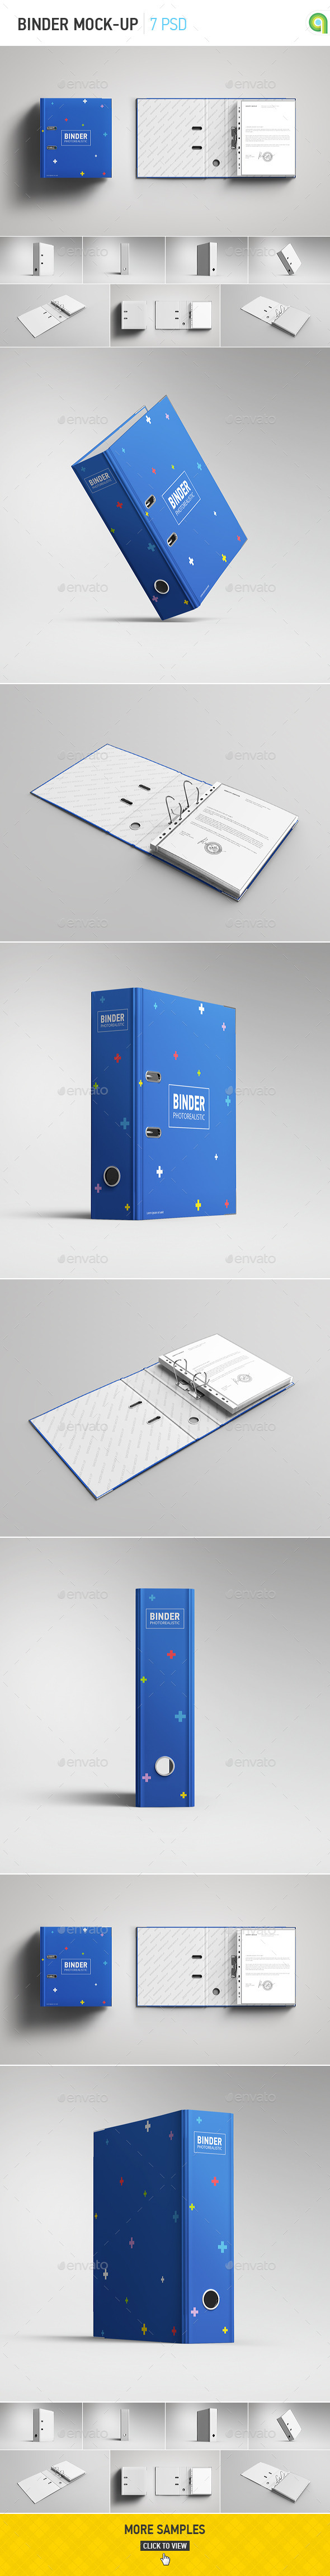 GraphicRiver Binder Mock-Up 11153013